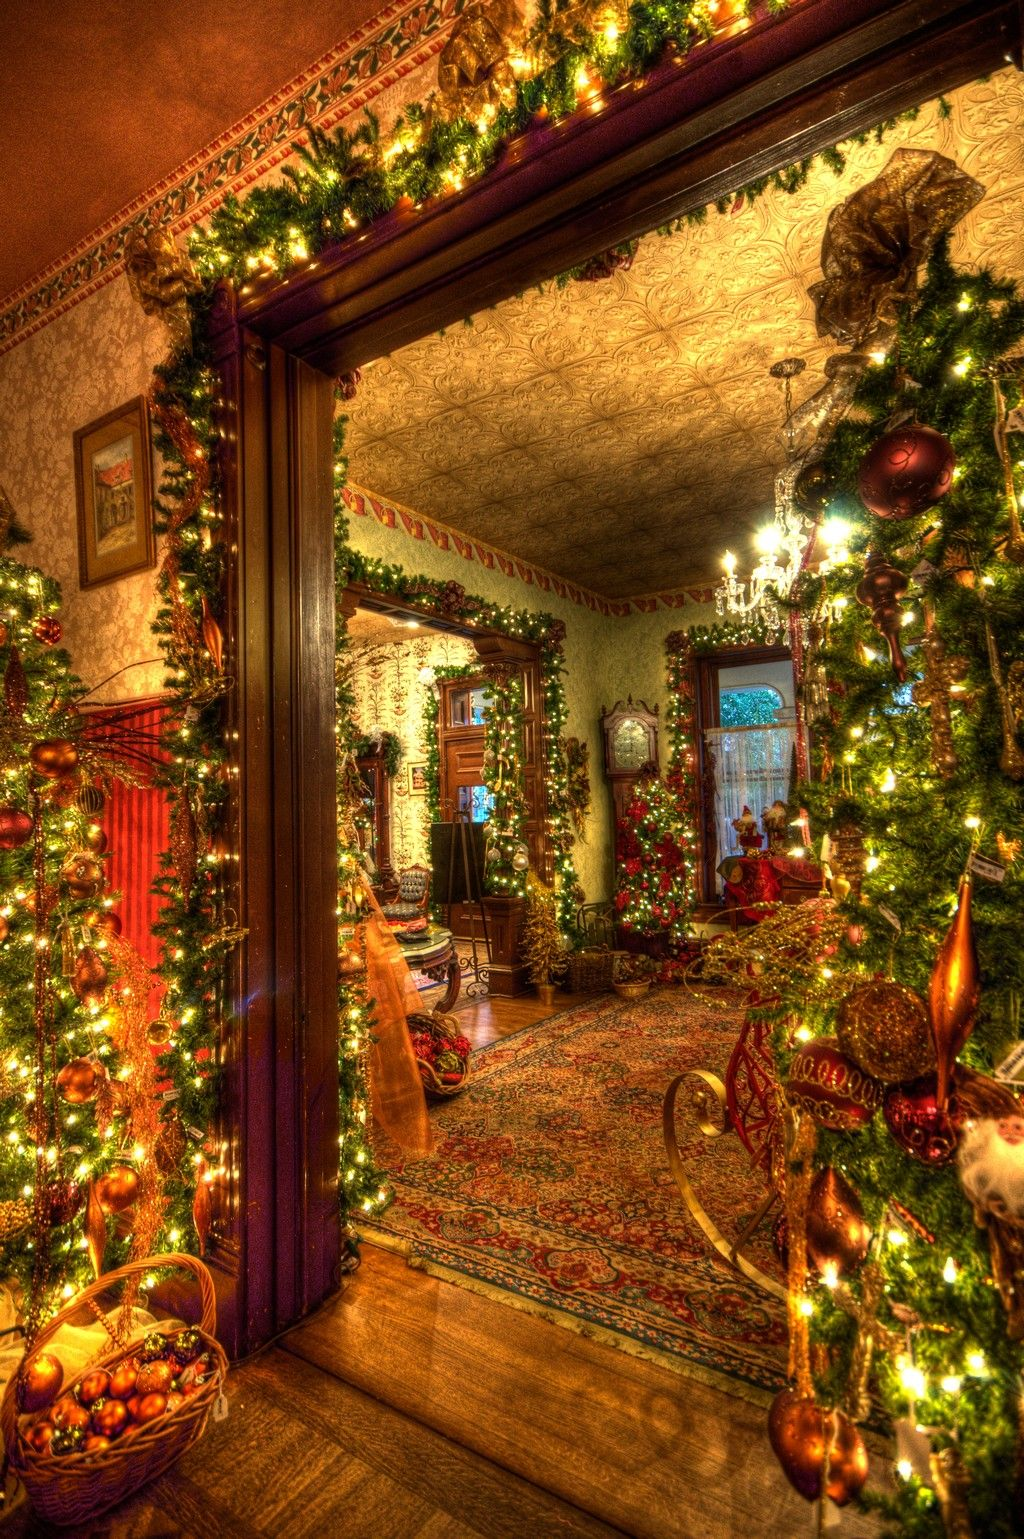 30 Beautiful Victorian Christmas Decorations Ideas | Christmas ...